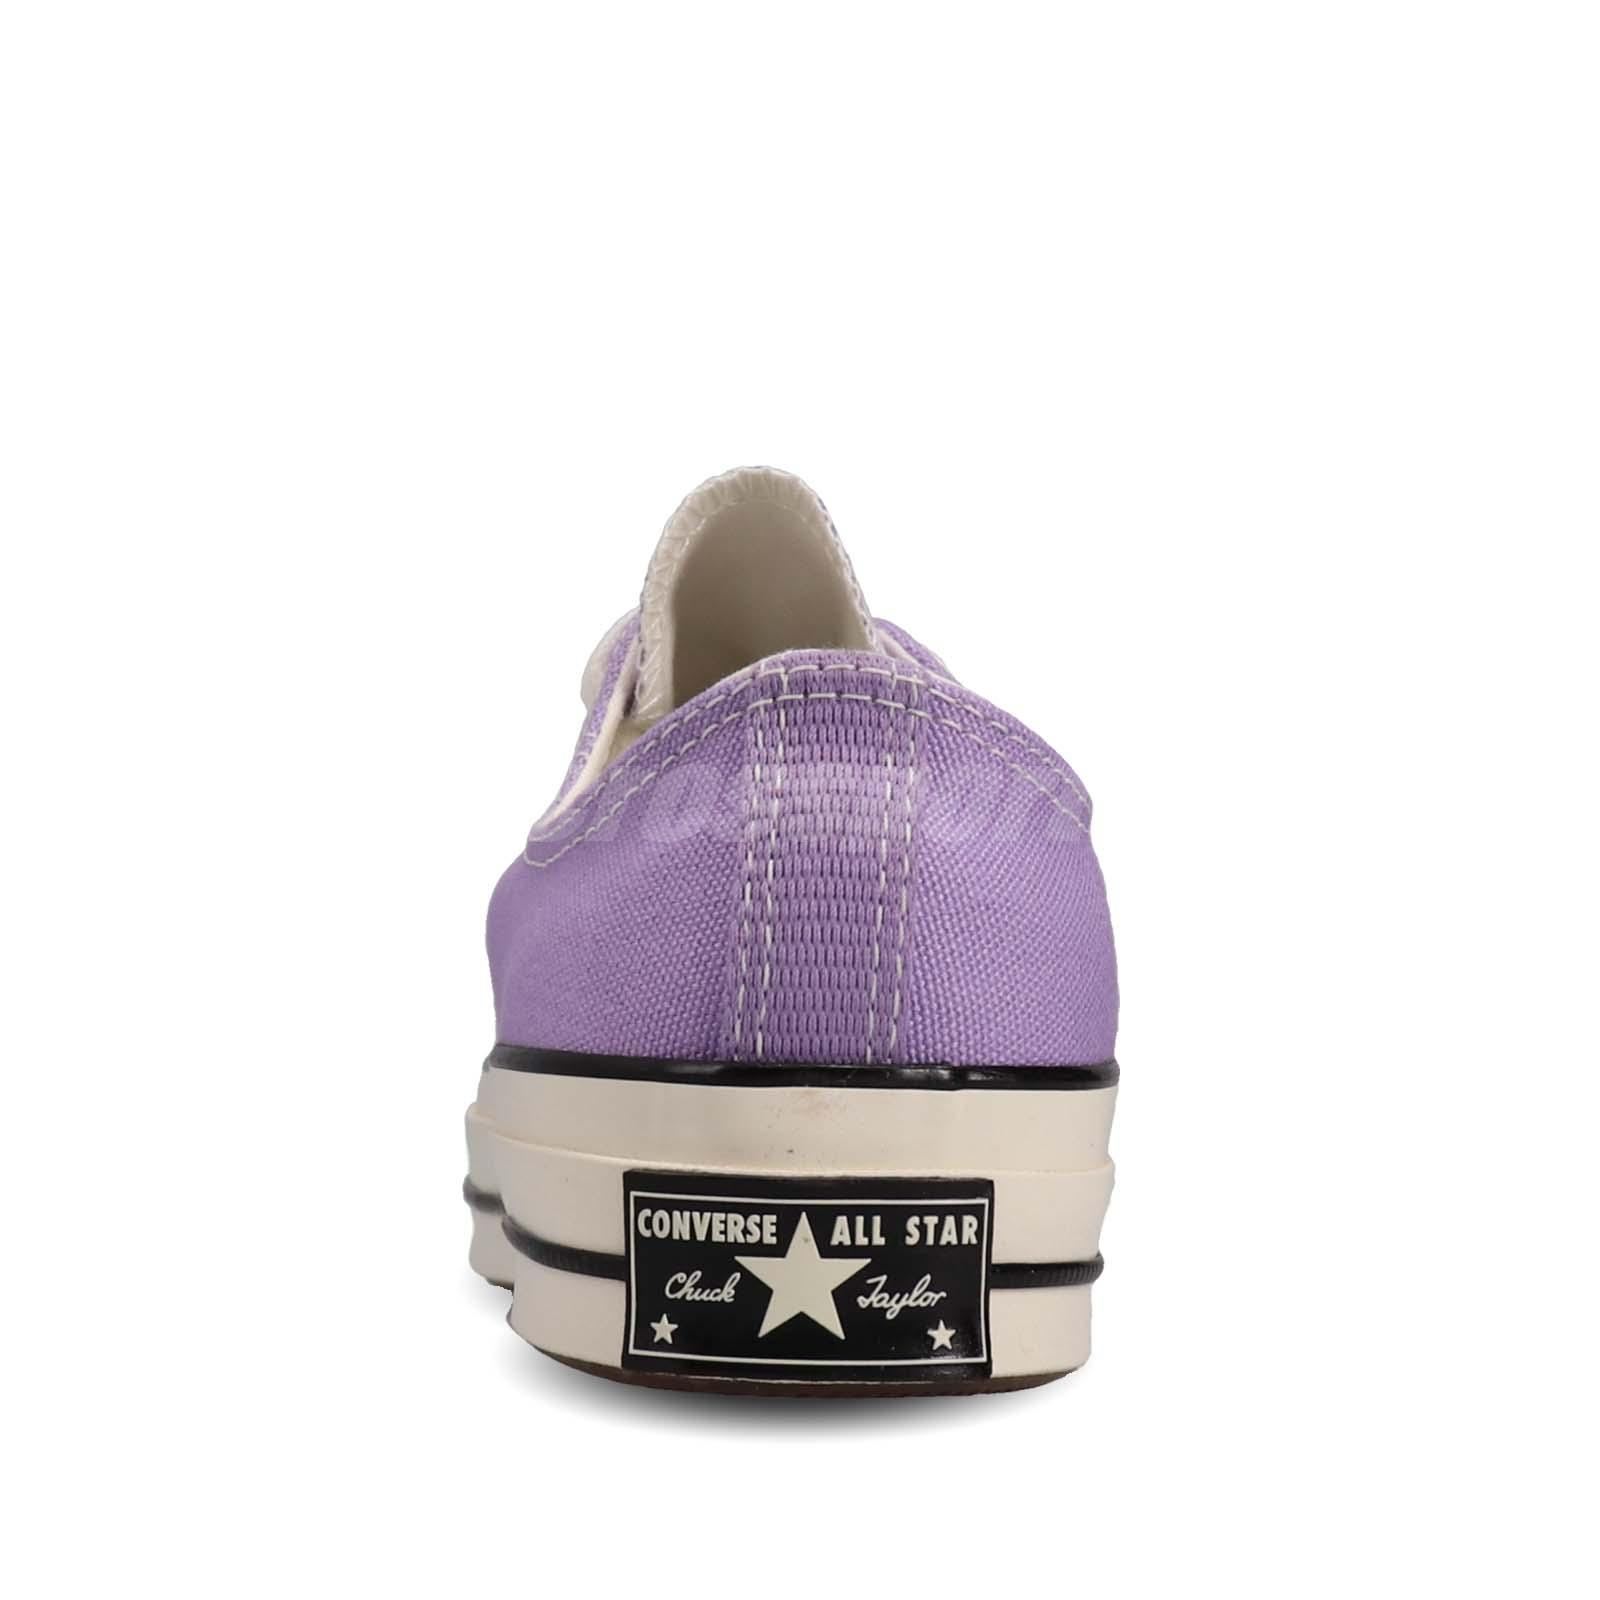 Details about Converse First String Chuck Taylor All Star 70 OX Purple Men Women Shoes 164405C